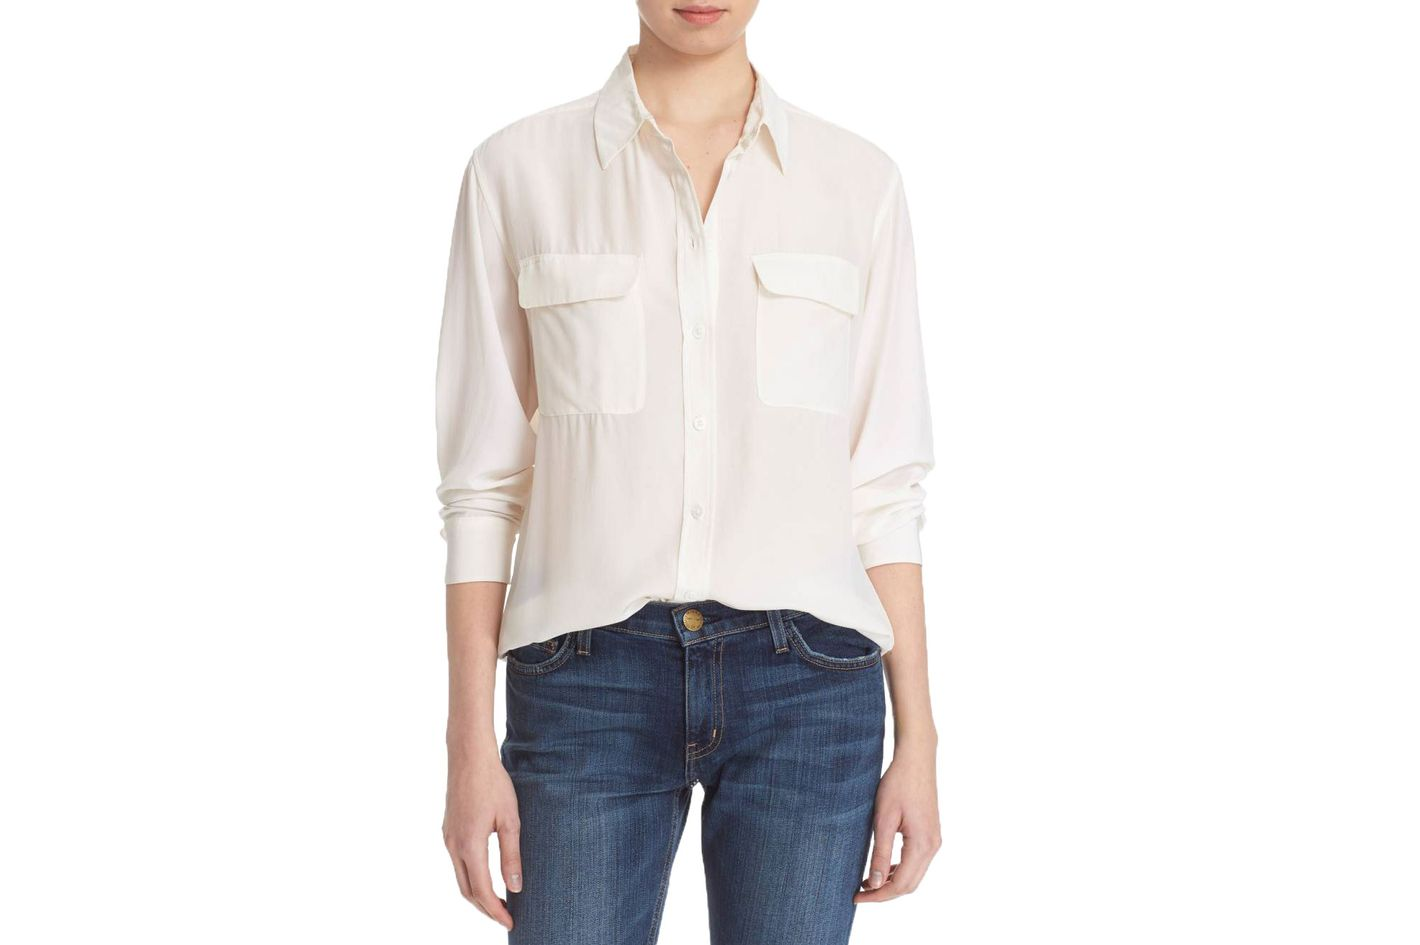 The Best Womens Blouse You Can Buy In Every Color